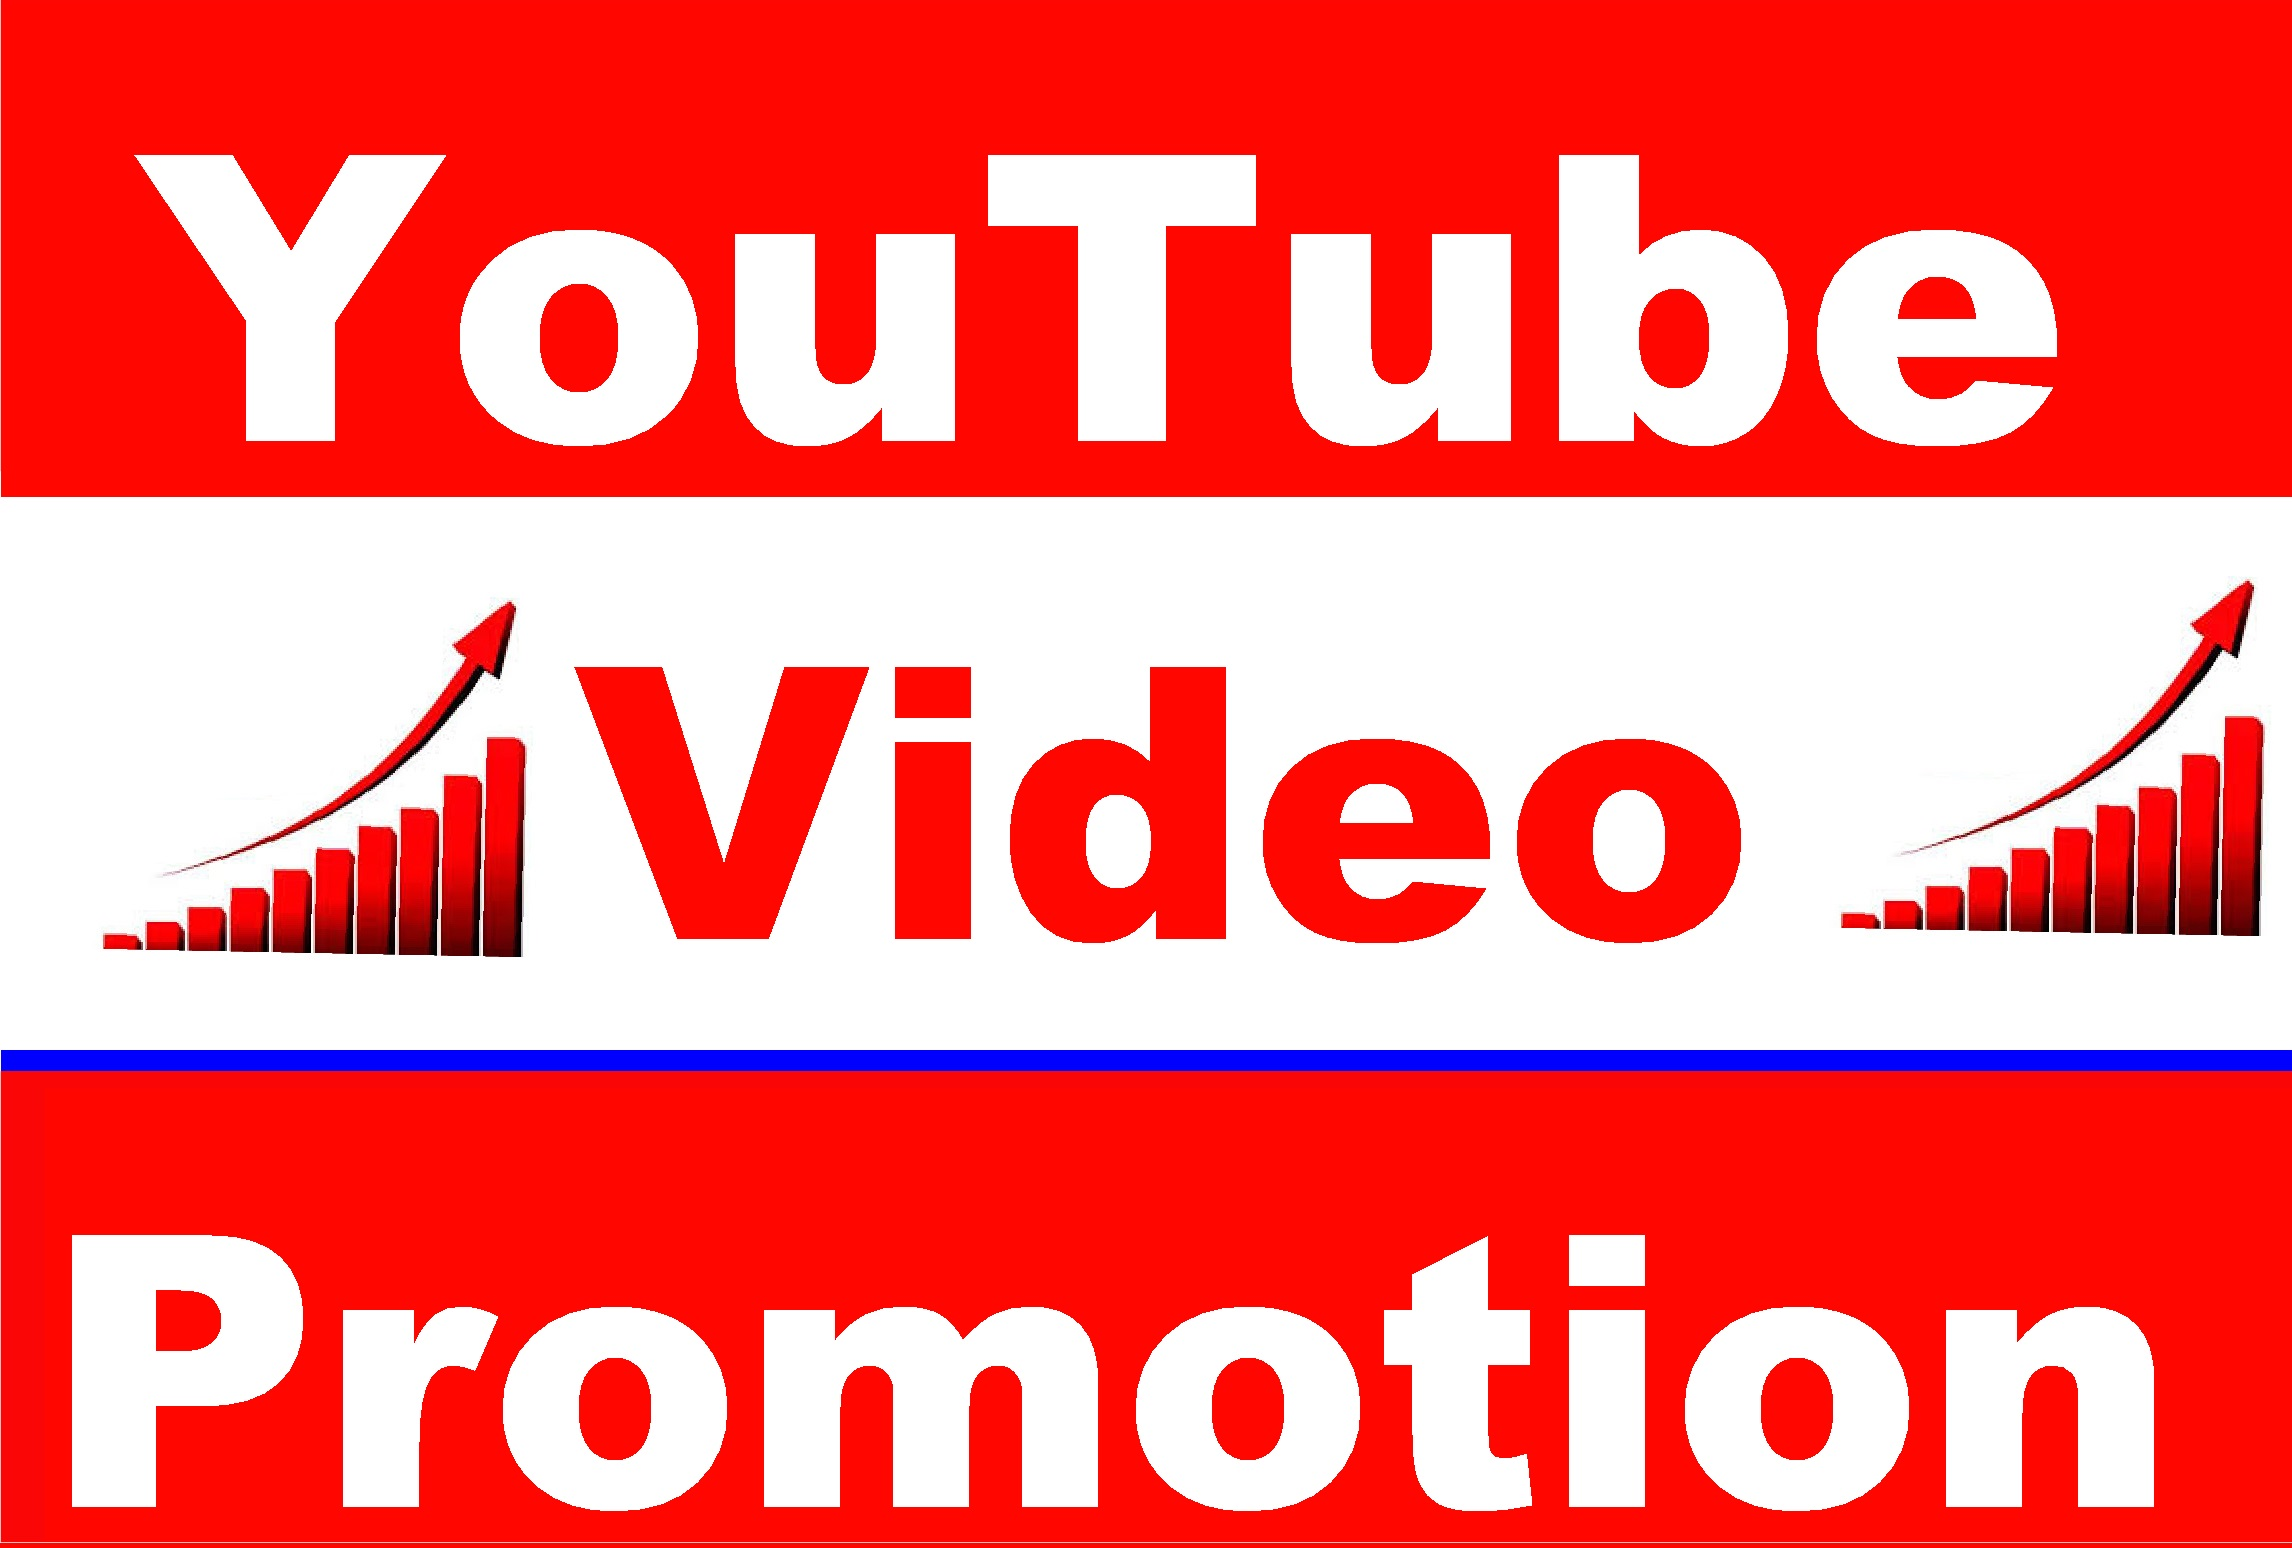 YouTube Video Marketing Real Active Audience